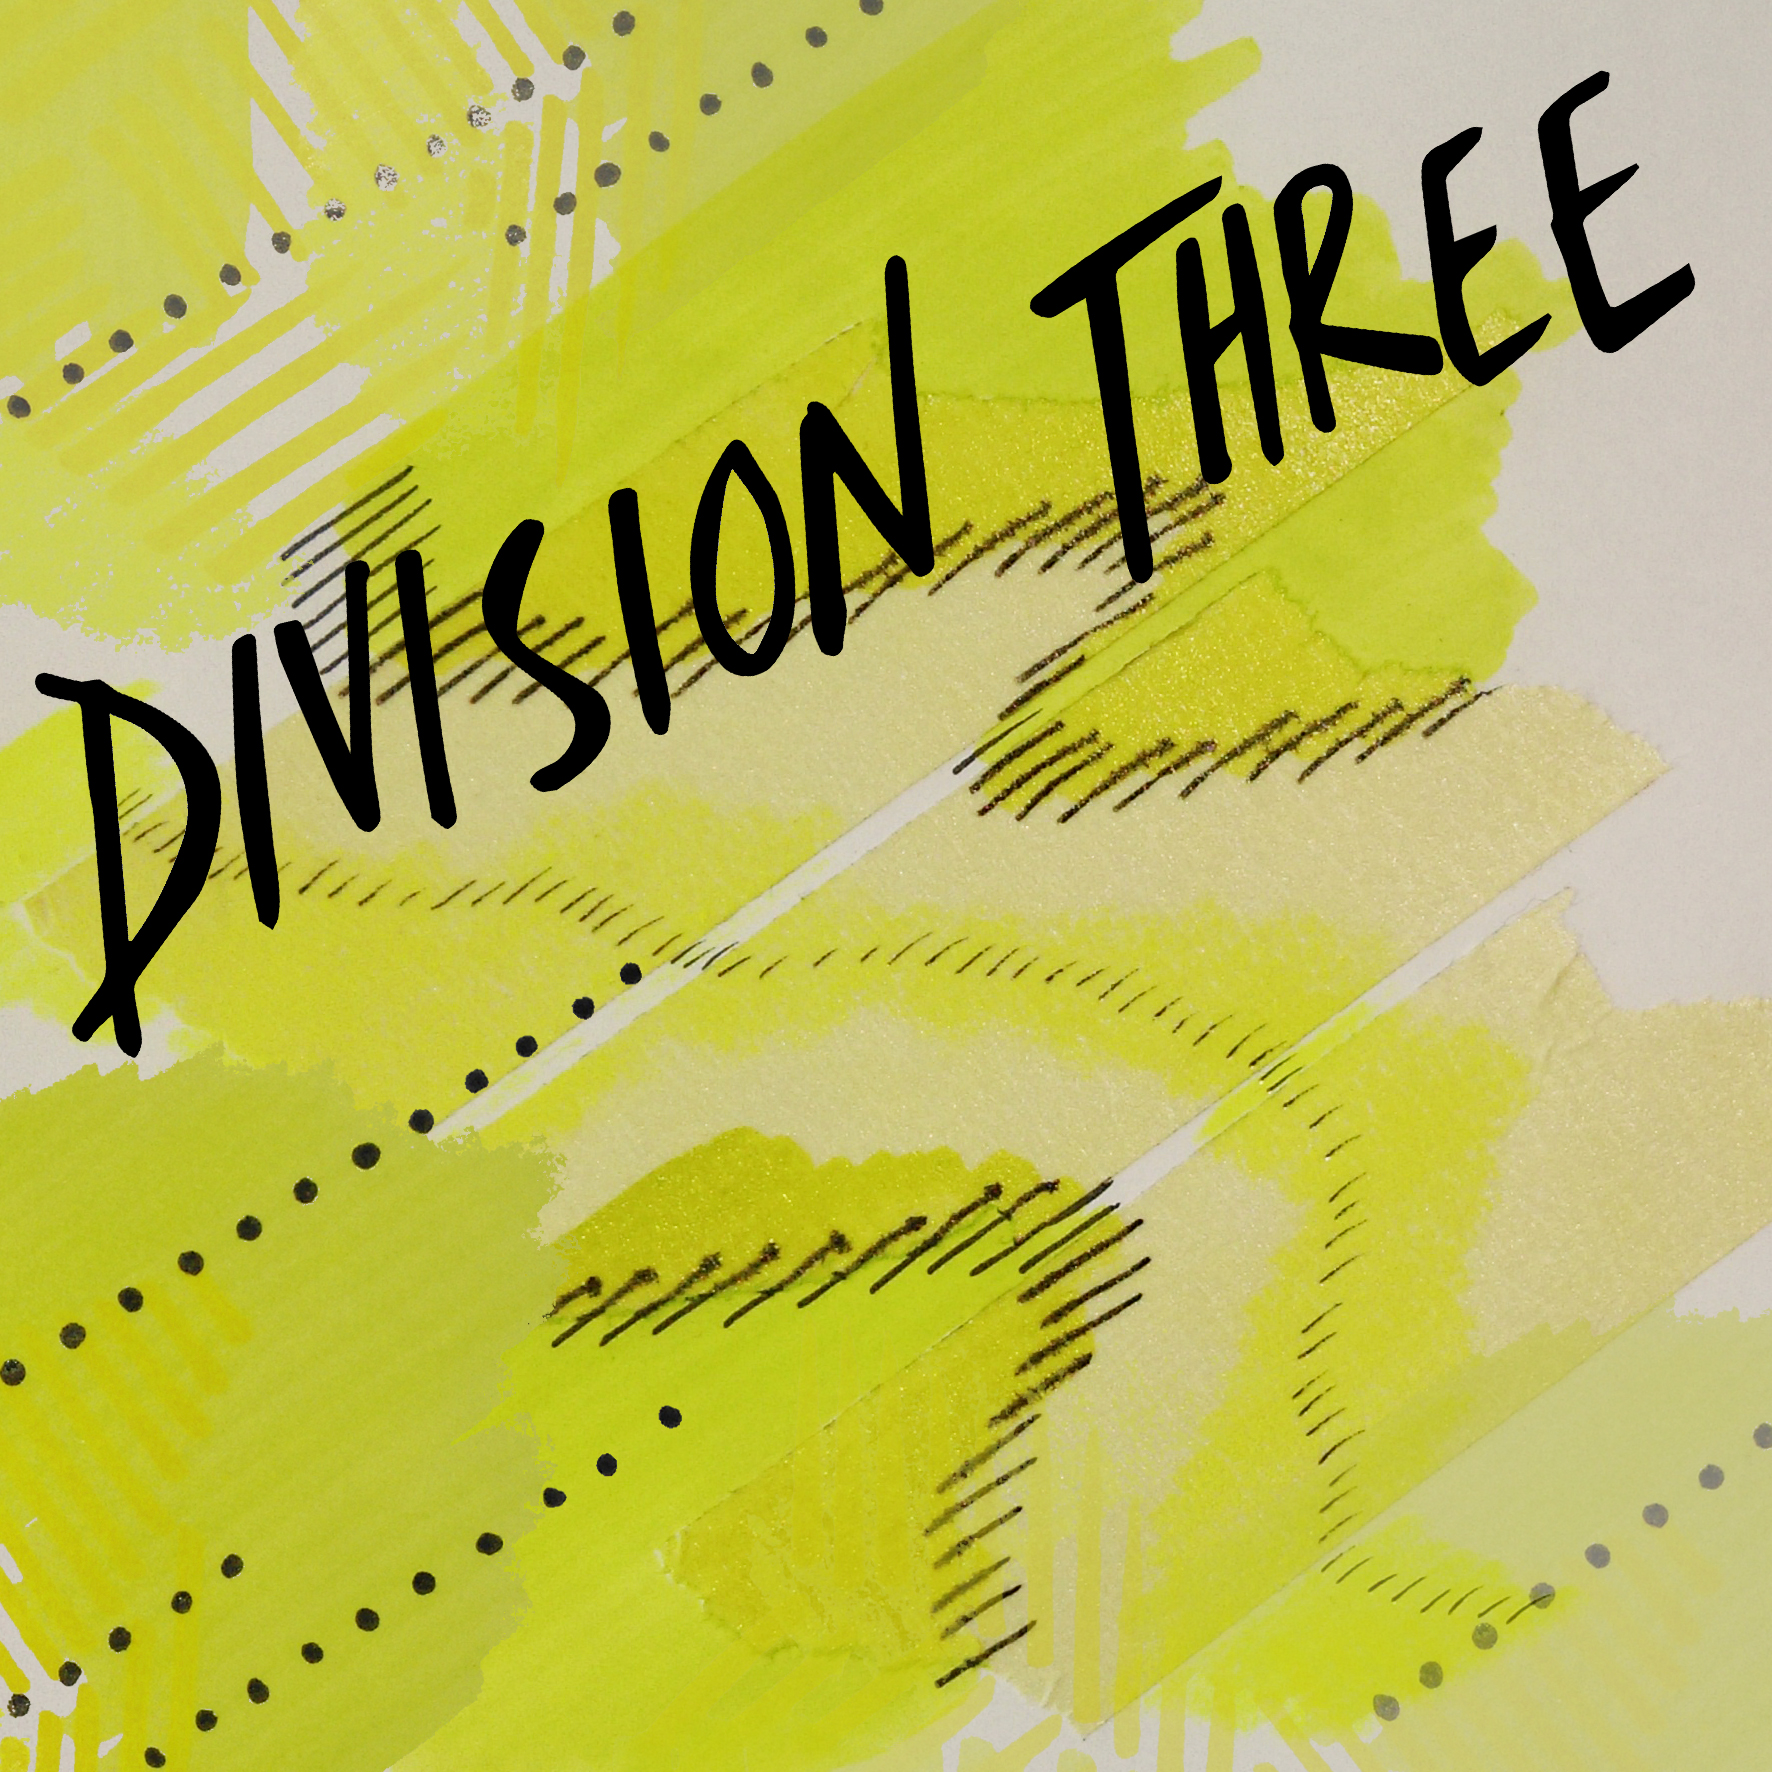 Division 3 Long Division Compilation Album 2015